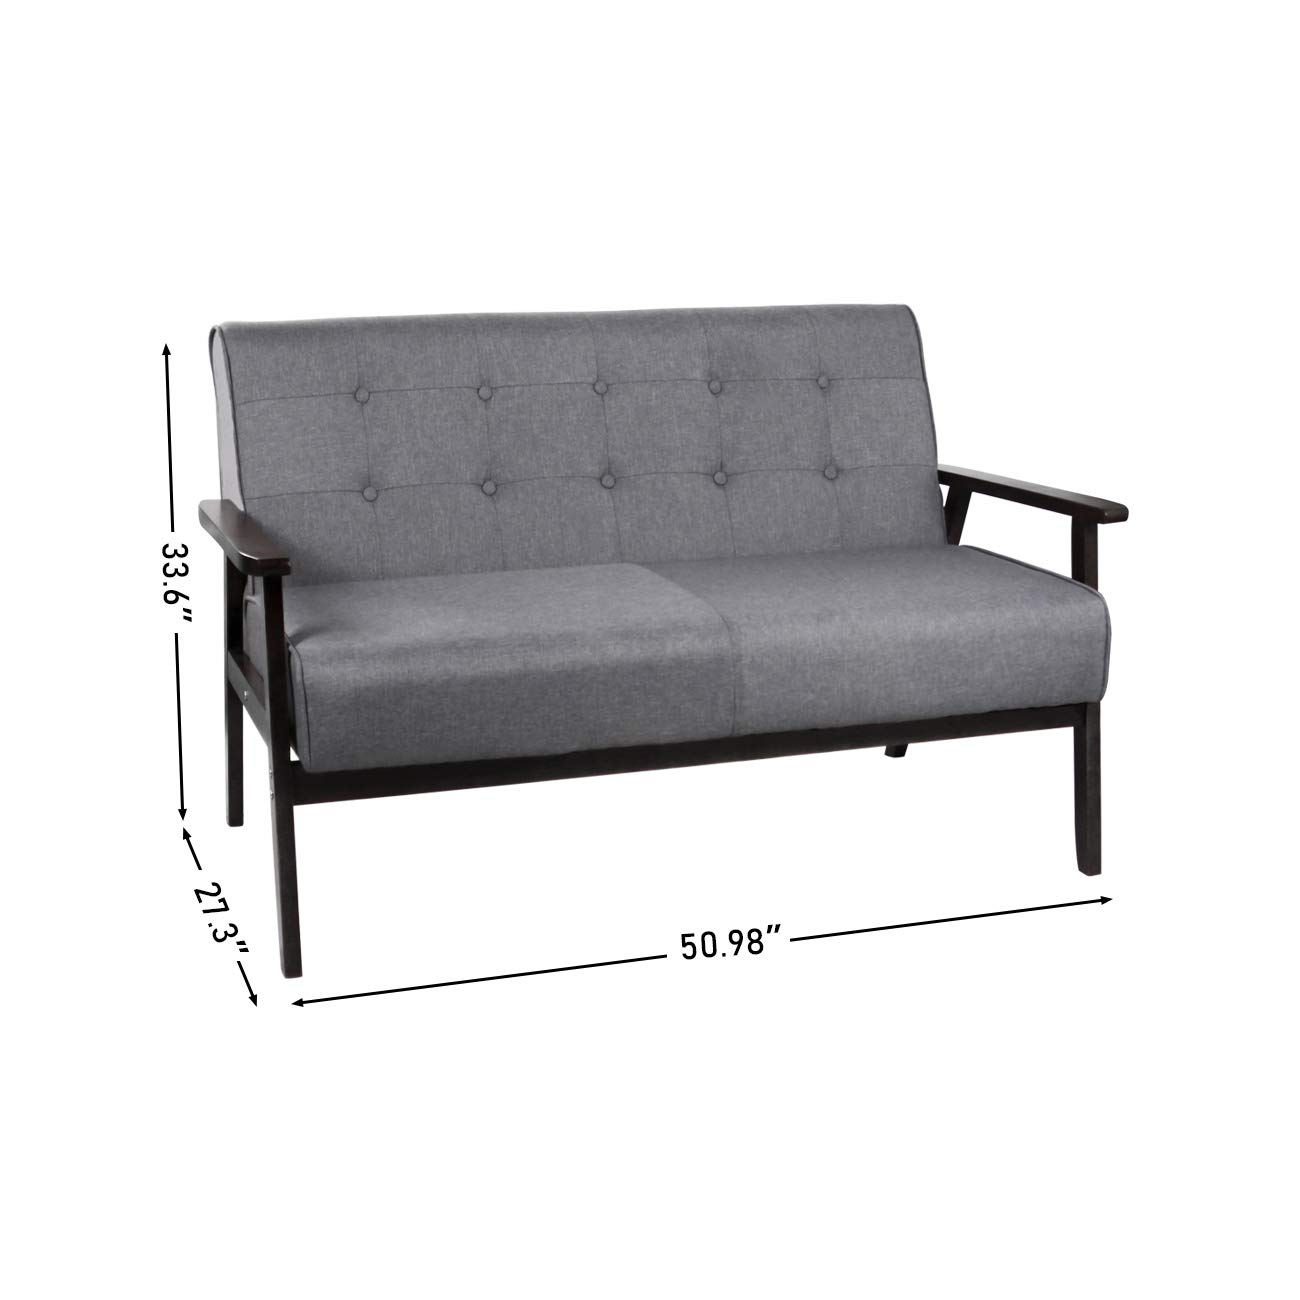 Solid Wood Armrest Loveseats, Mid-Century Modern Grey Fabric Sofa, Upholstered Tufted Back Couch, 2-seat, Seating Size 48